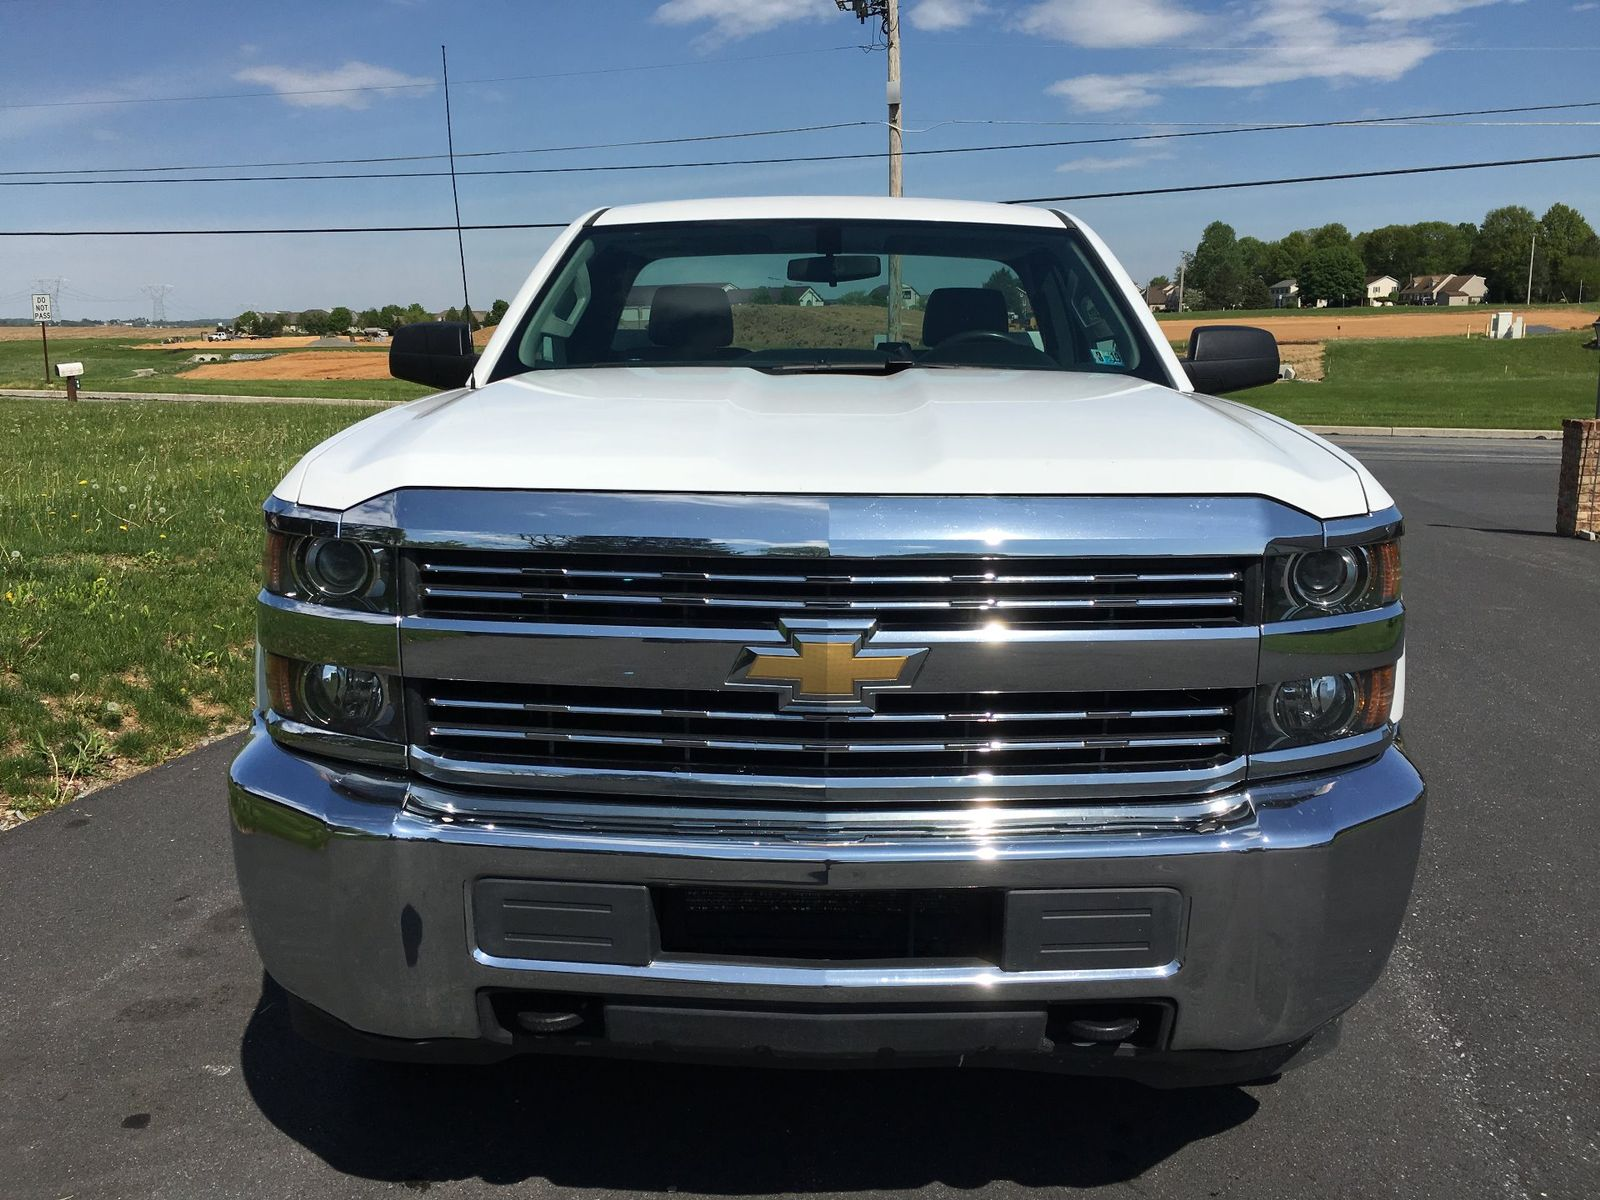 2015 Chevrolet Silverado 2500hd Built After Aug 14 Work Truck City Chevy Grille Pa Pine Tree Motors In